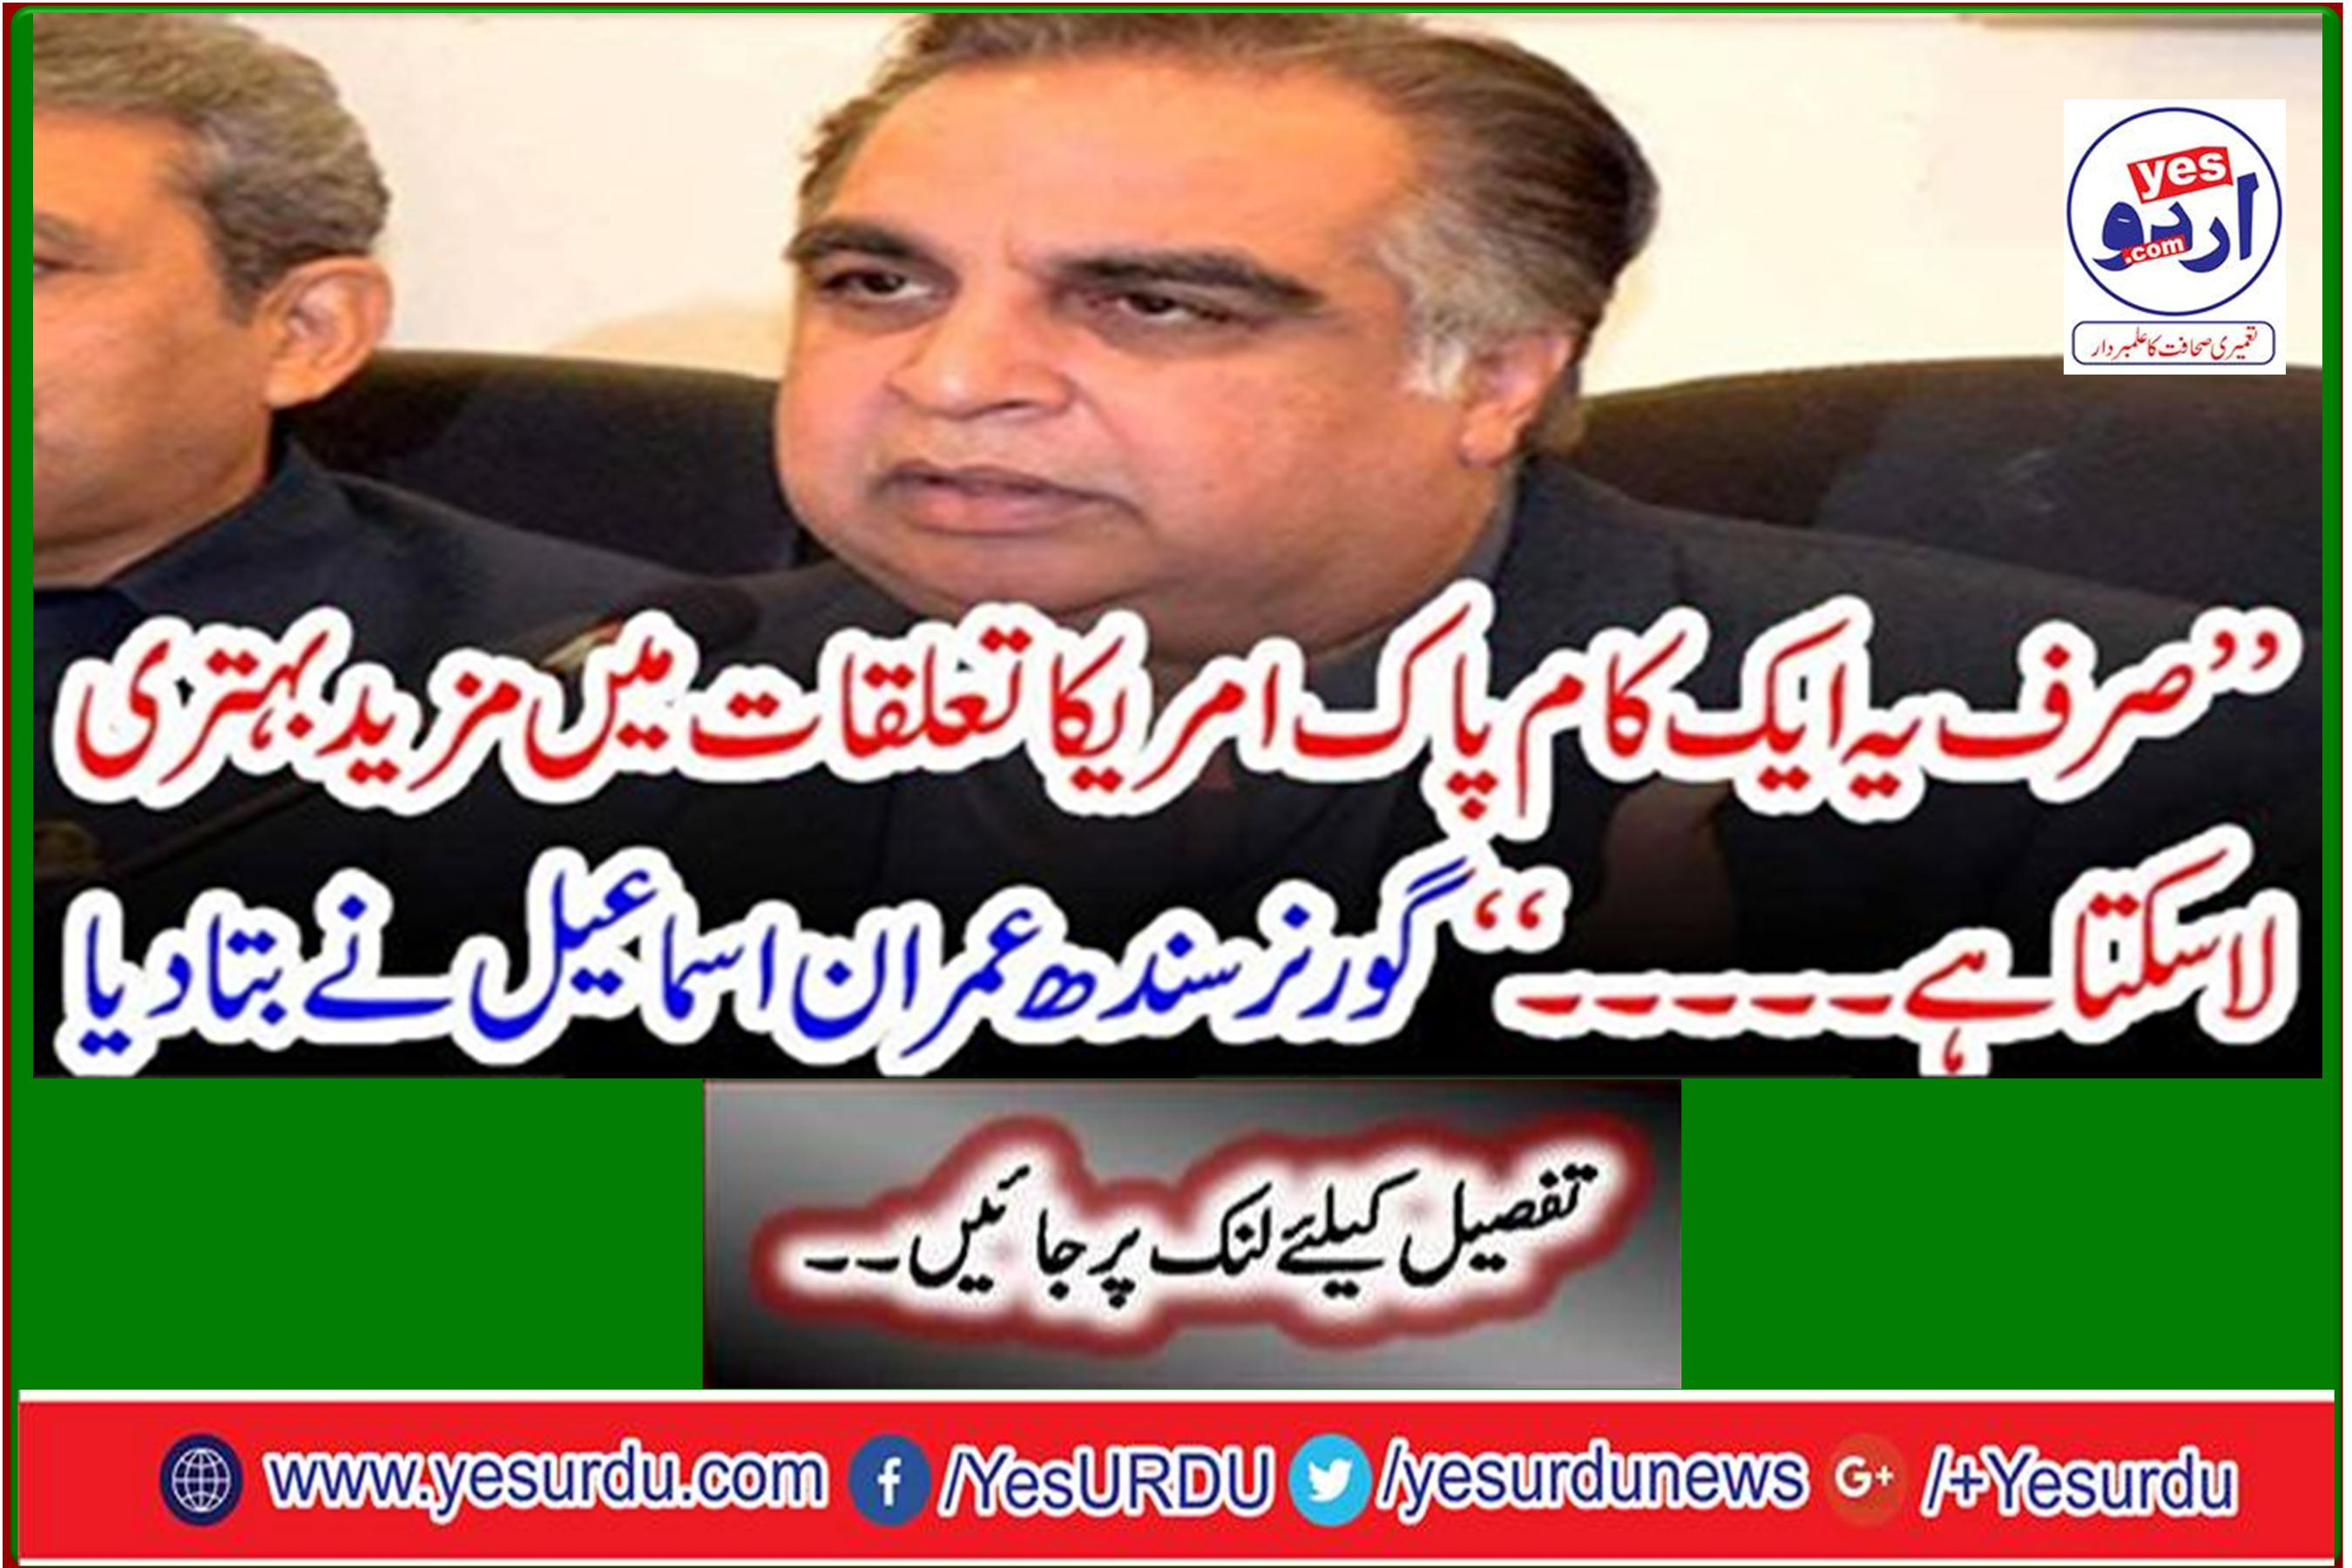 """Only one such act can improve Pak-US relations ..."" Governor Sindh Imran Ismail said."